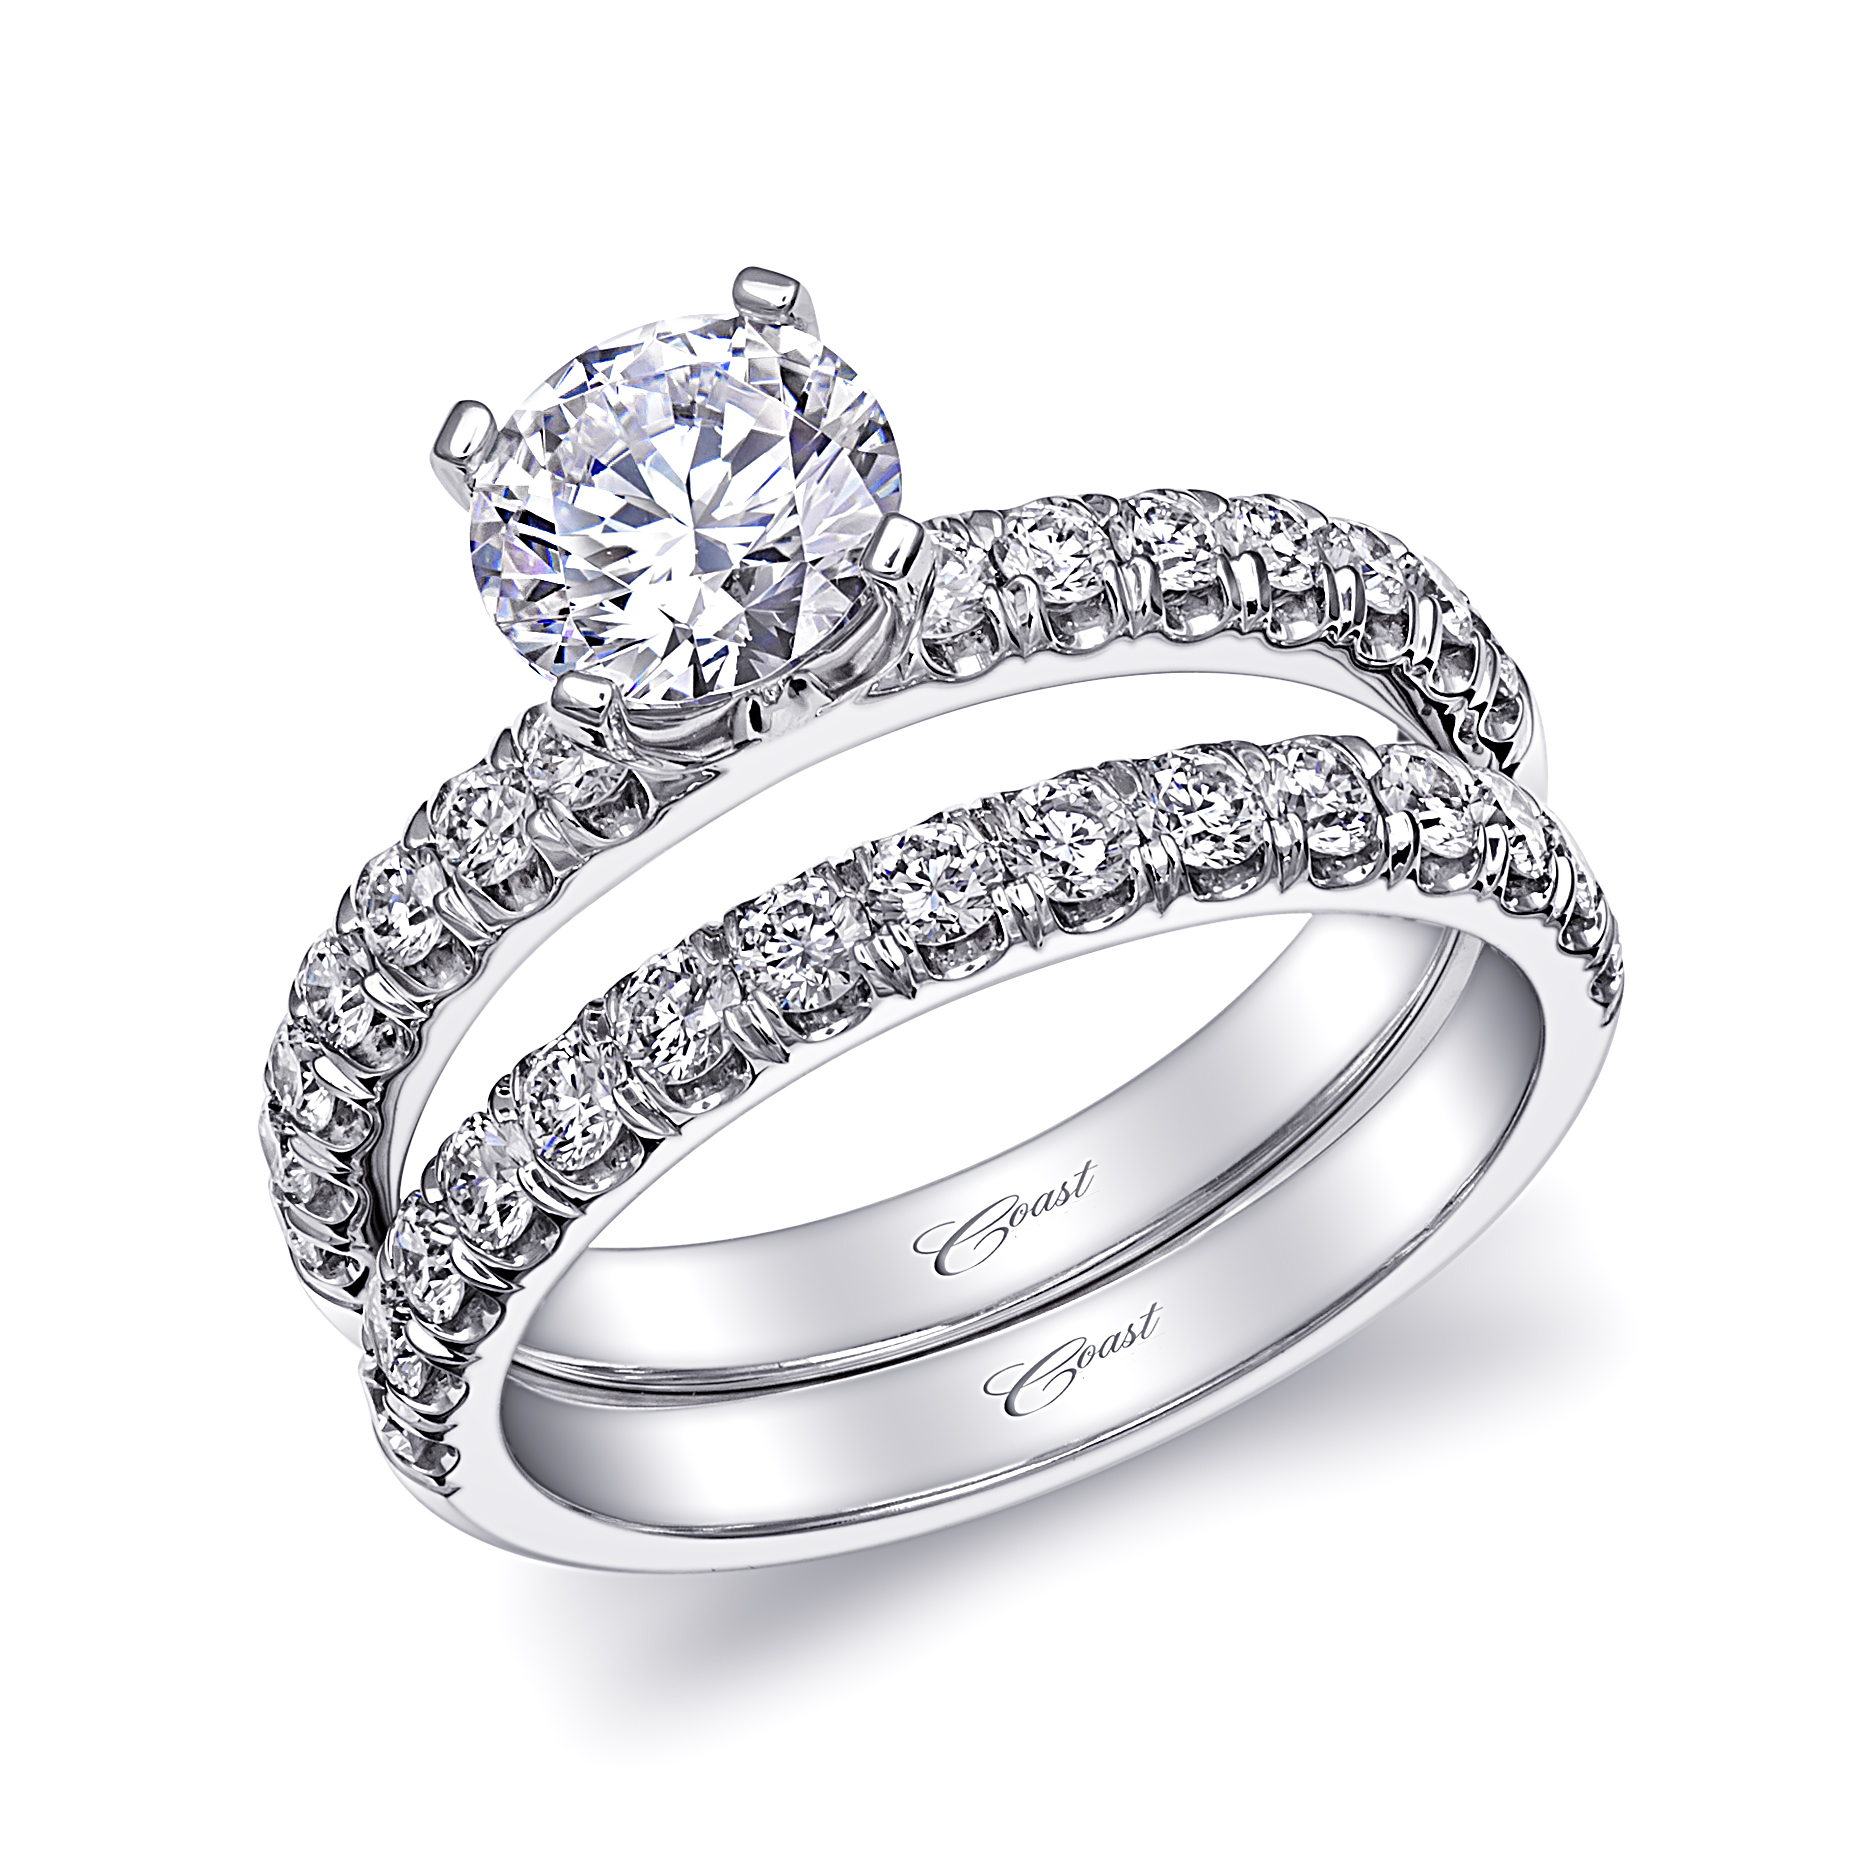 arnell diamond band bad bands wedding cut platinum lazare products jewelers diamonds kaklan full kaplan lk judith